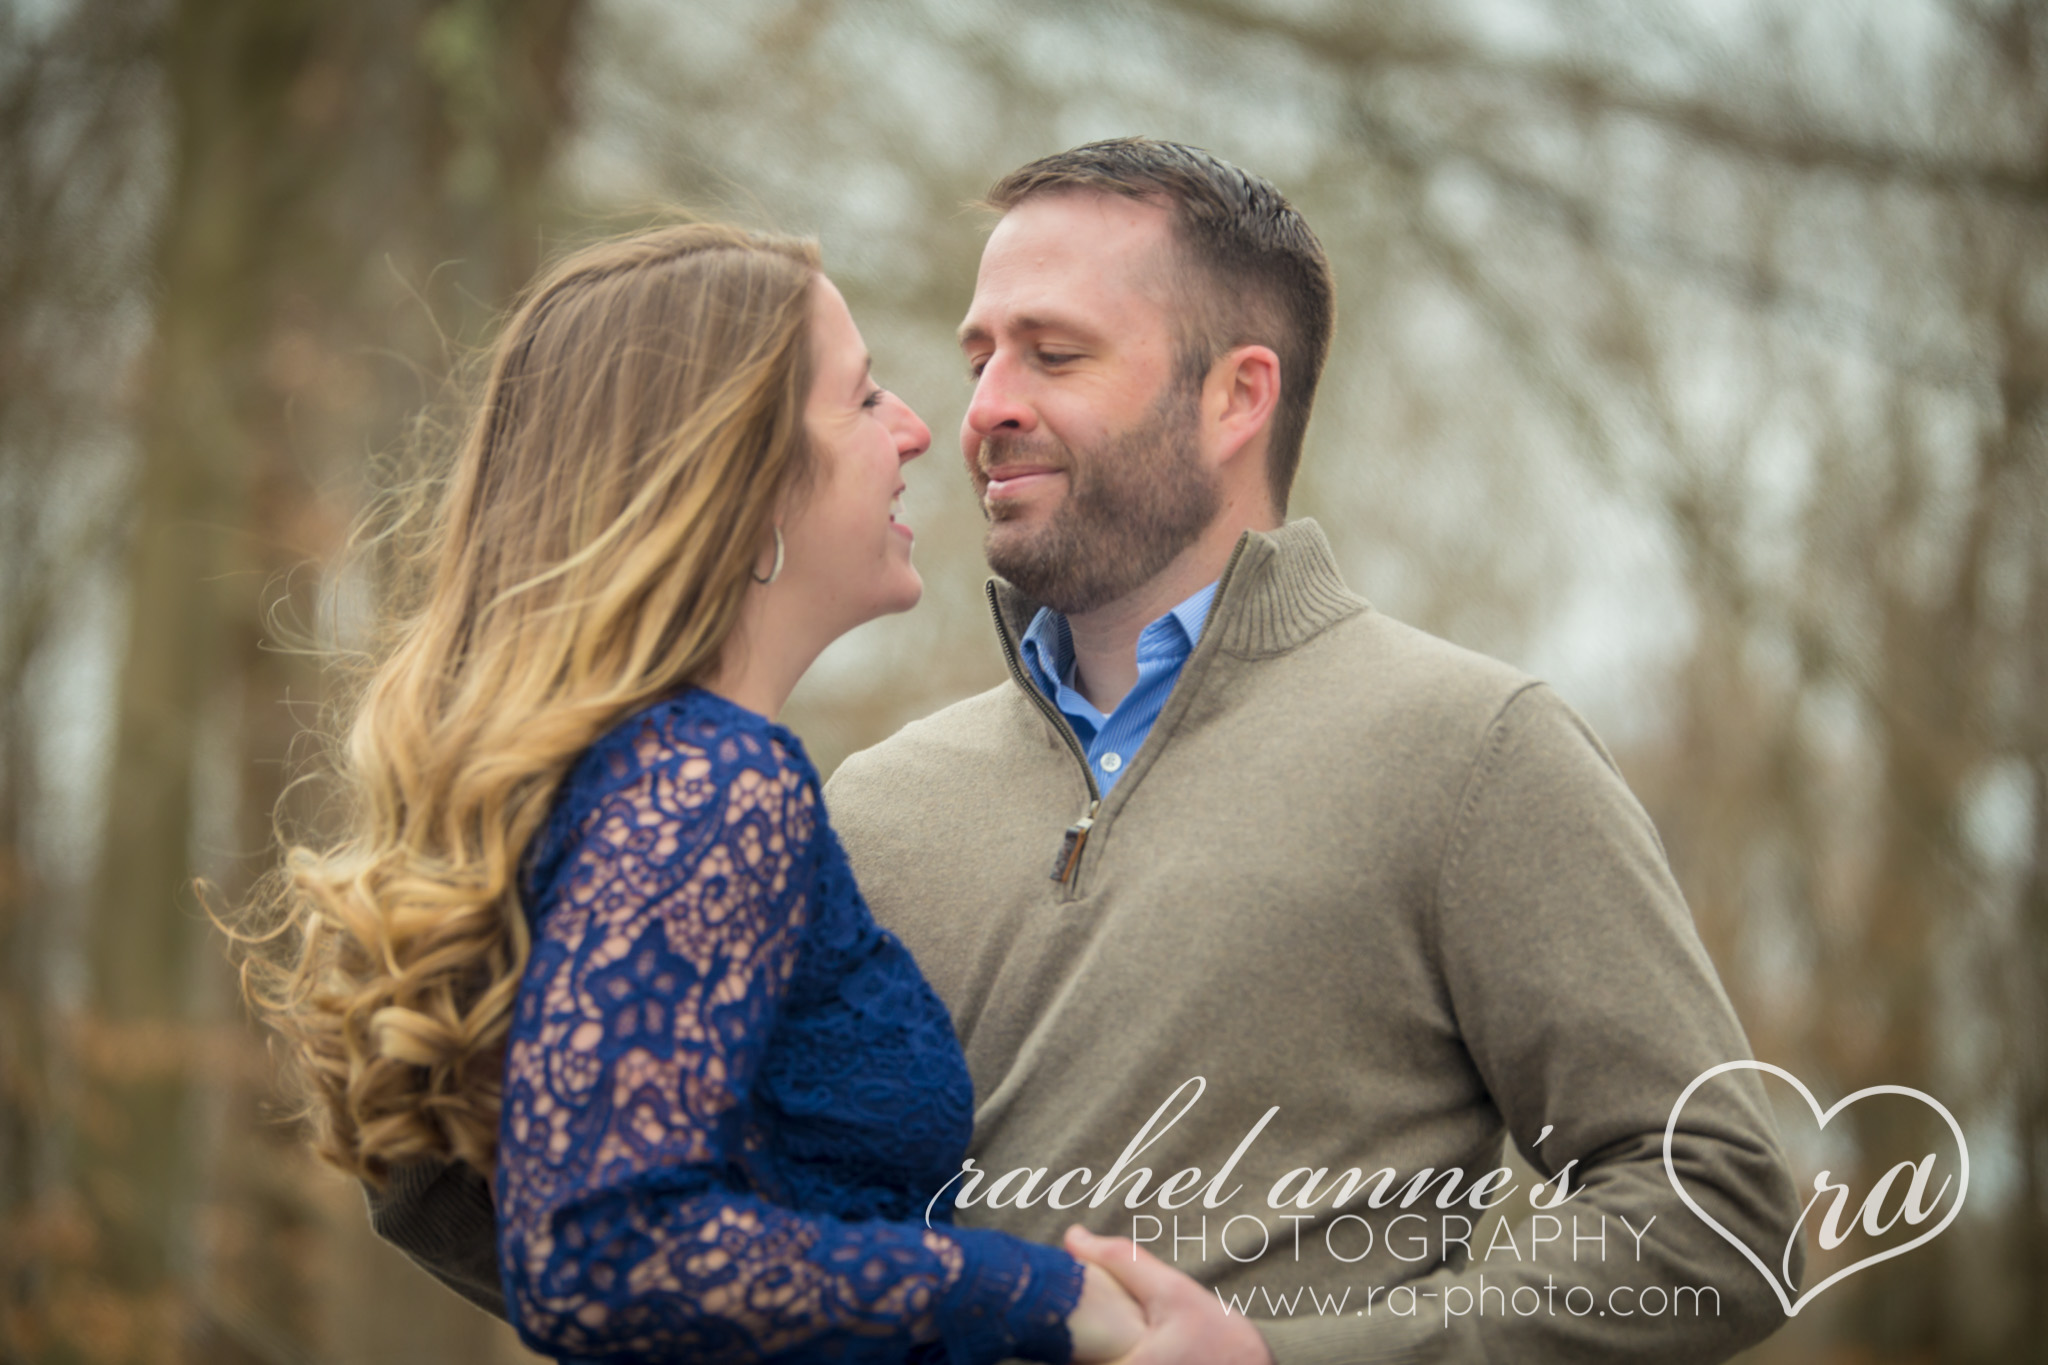 061-JKM-DUBOIS-PA-ENGAGEMENT-PHOTOGRAPHY.jpg